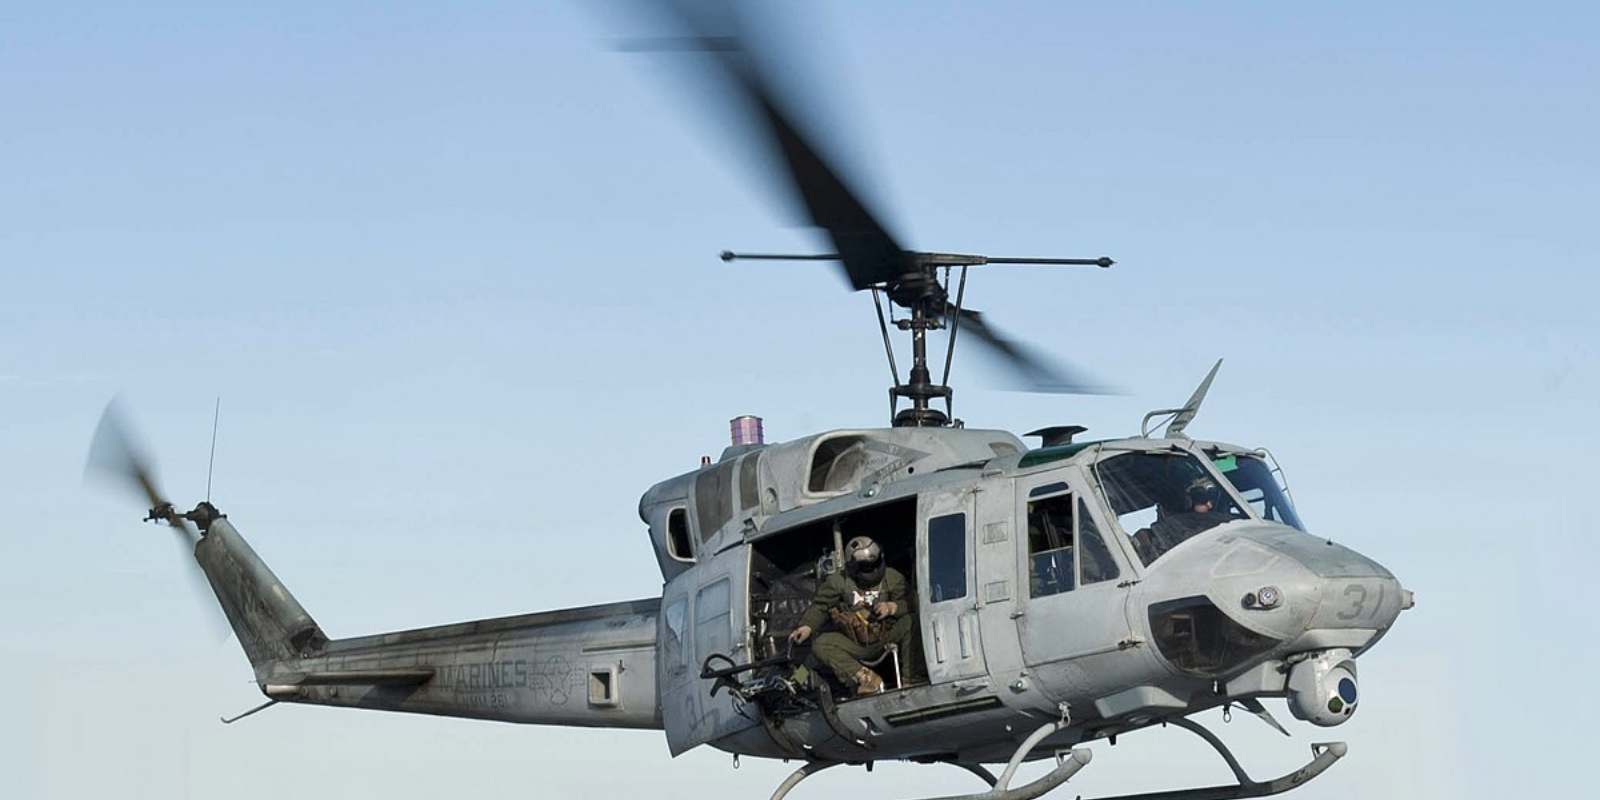 One wounded as US military helicopter is shot at over Virginia